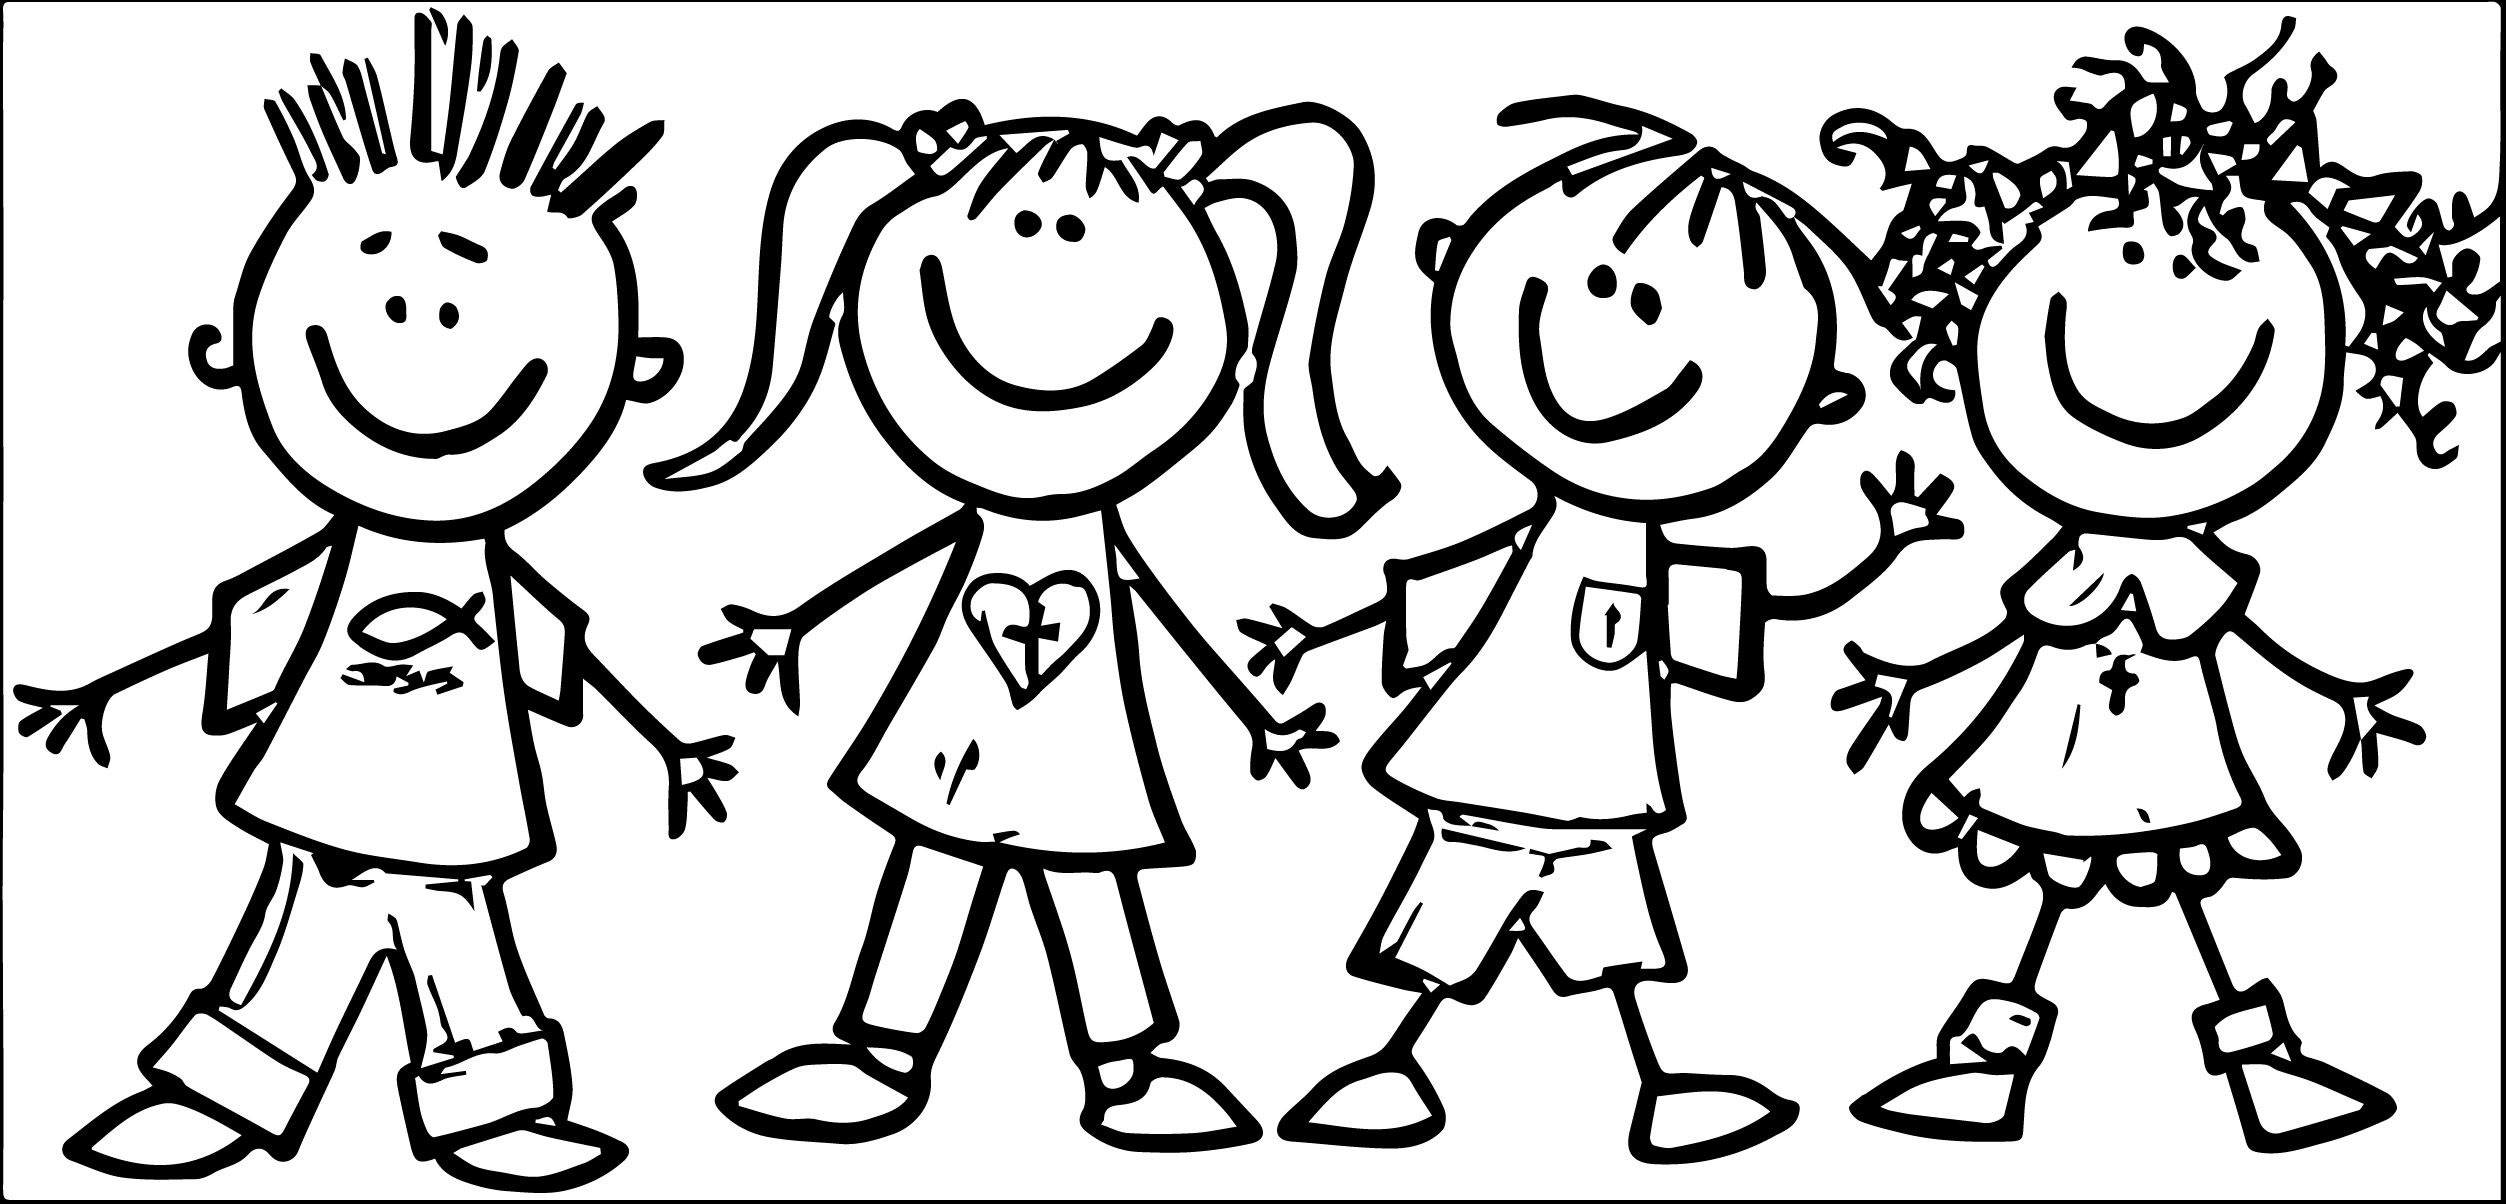 Free Preschool Clip Art Pictures Clipart Black And White Kids Clipart Coloring Pages For Kids